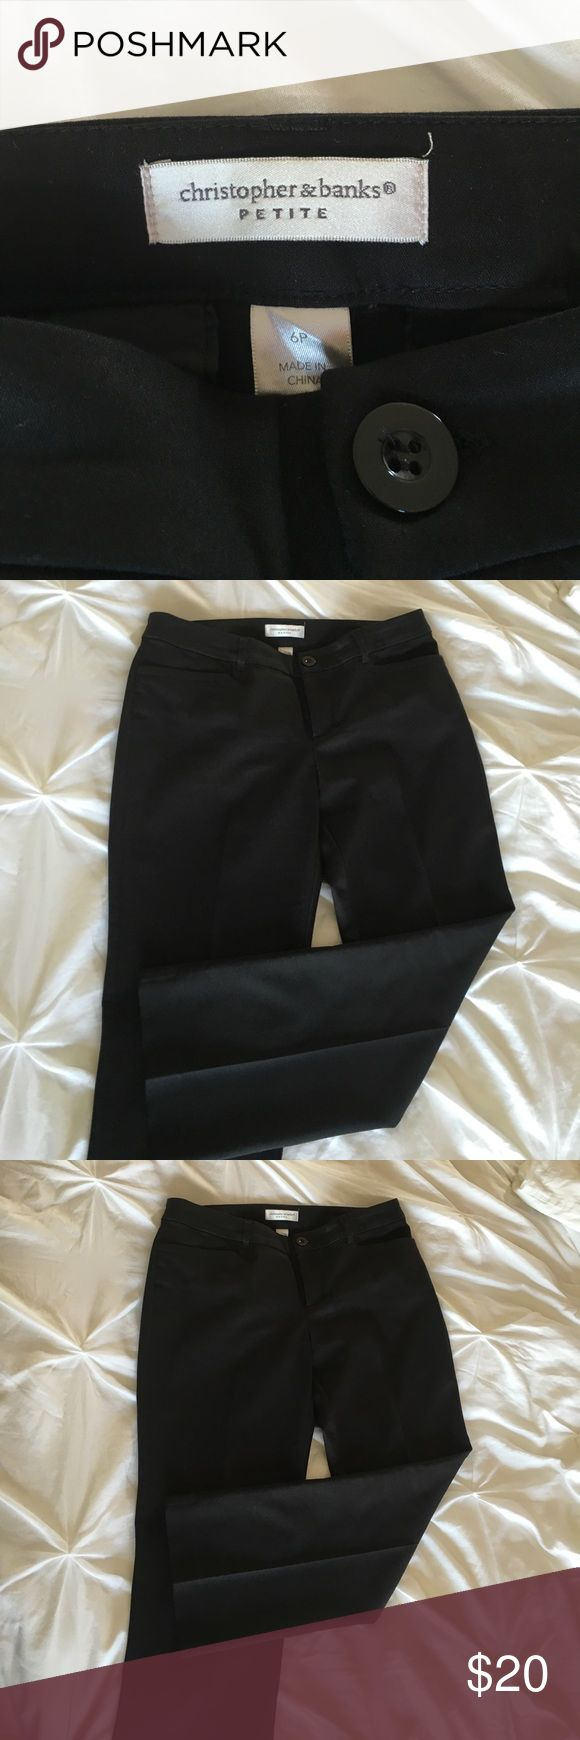 "Size 6 petite black dress pants Size 6P, black Christopher Banks dress pants. Waist 16"". Inseam 27"". Excellent condition. Smoke/pet free home. Christopher & Banks Pants"